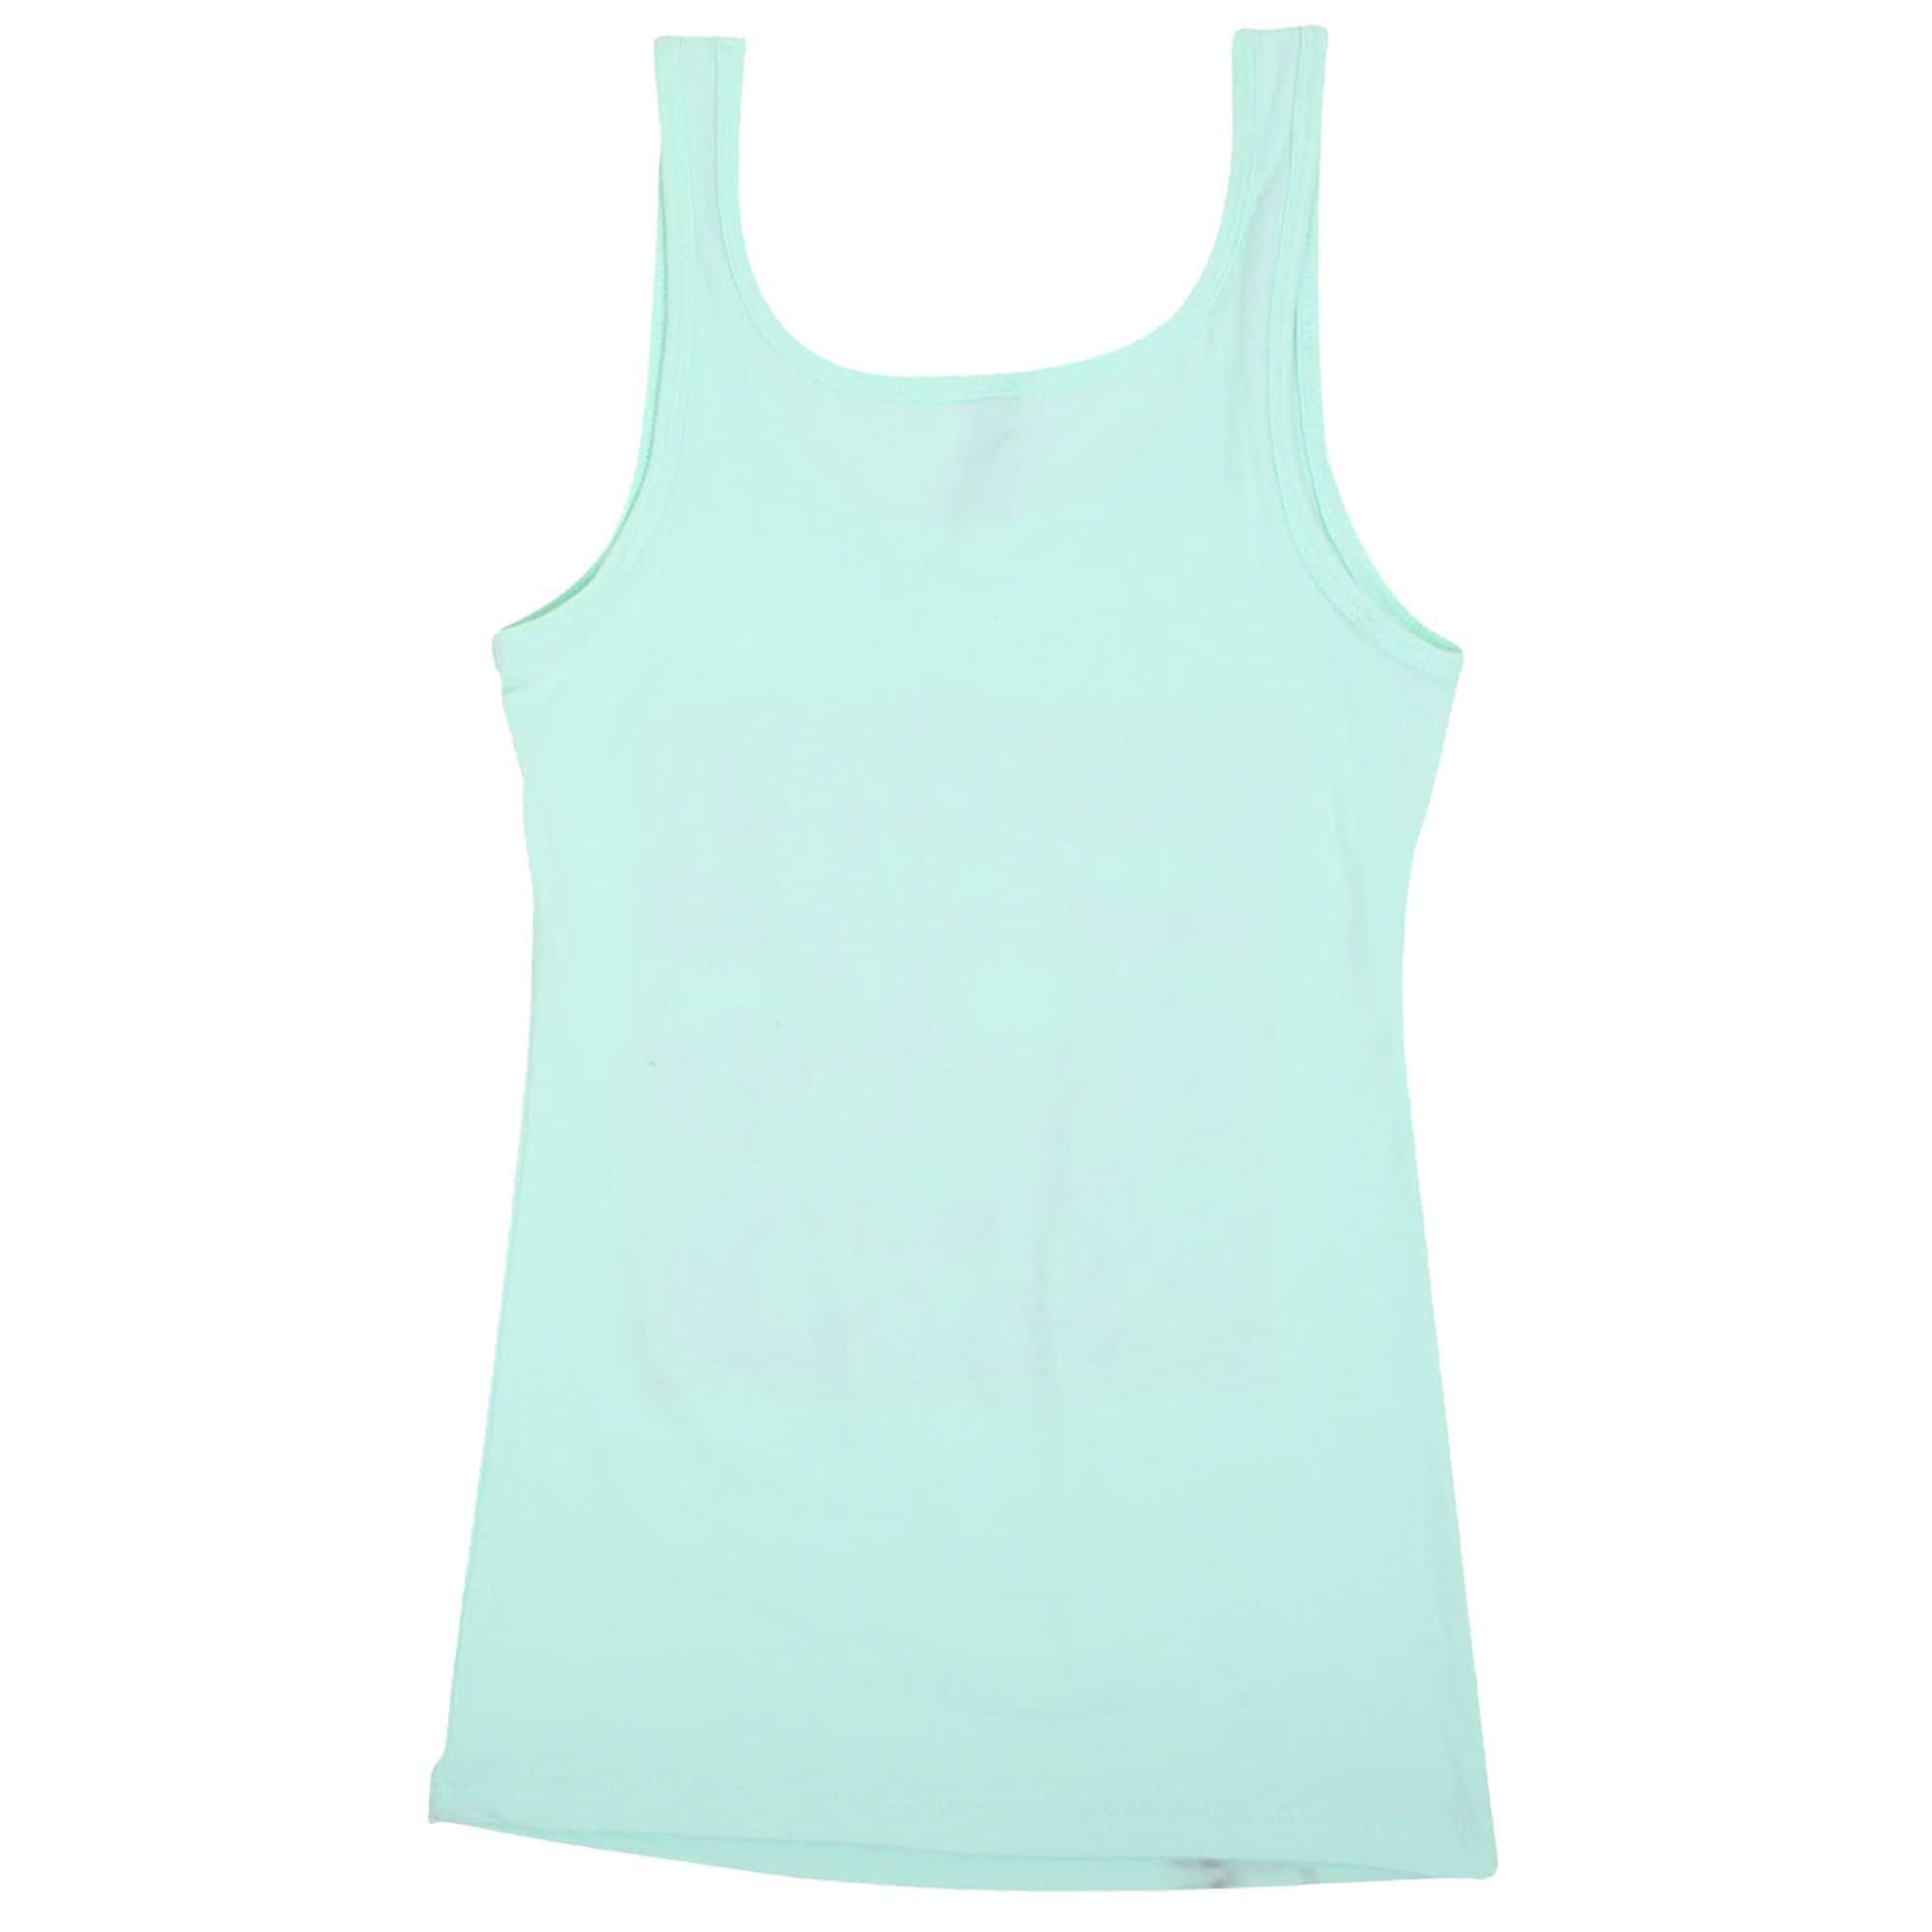 'Jewels' Women's Tank Top